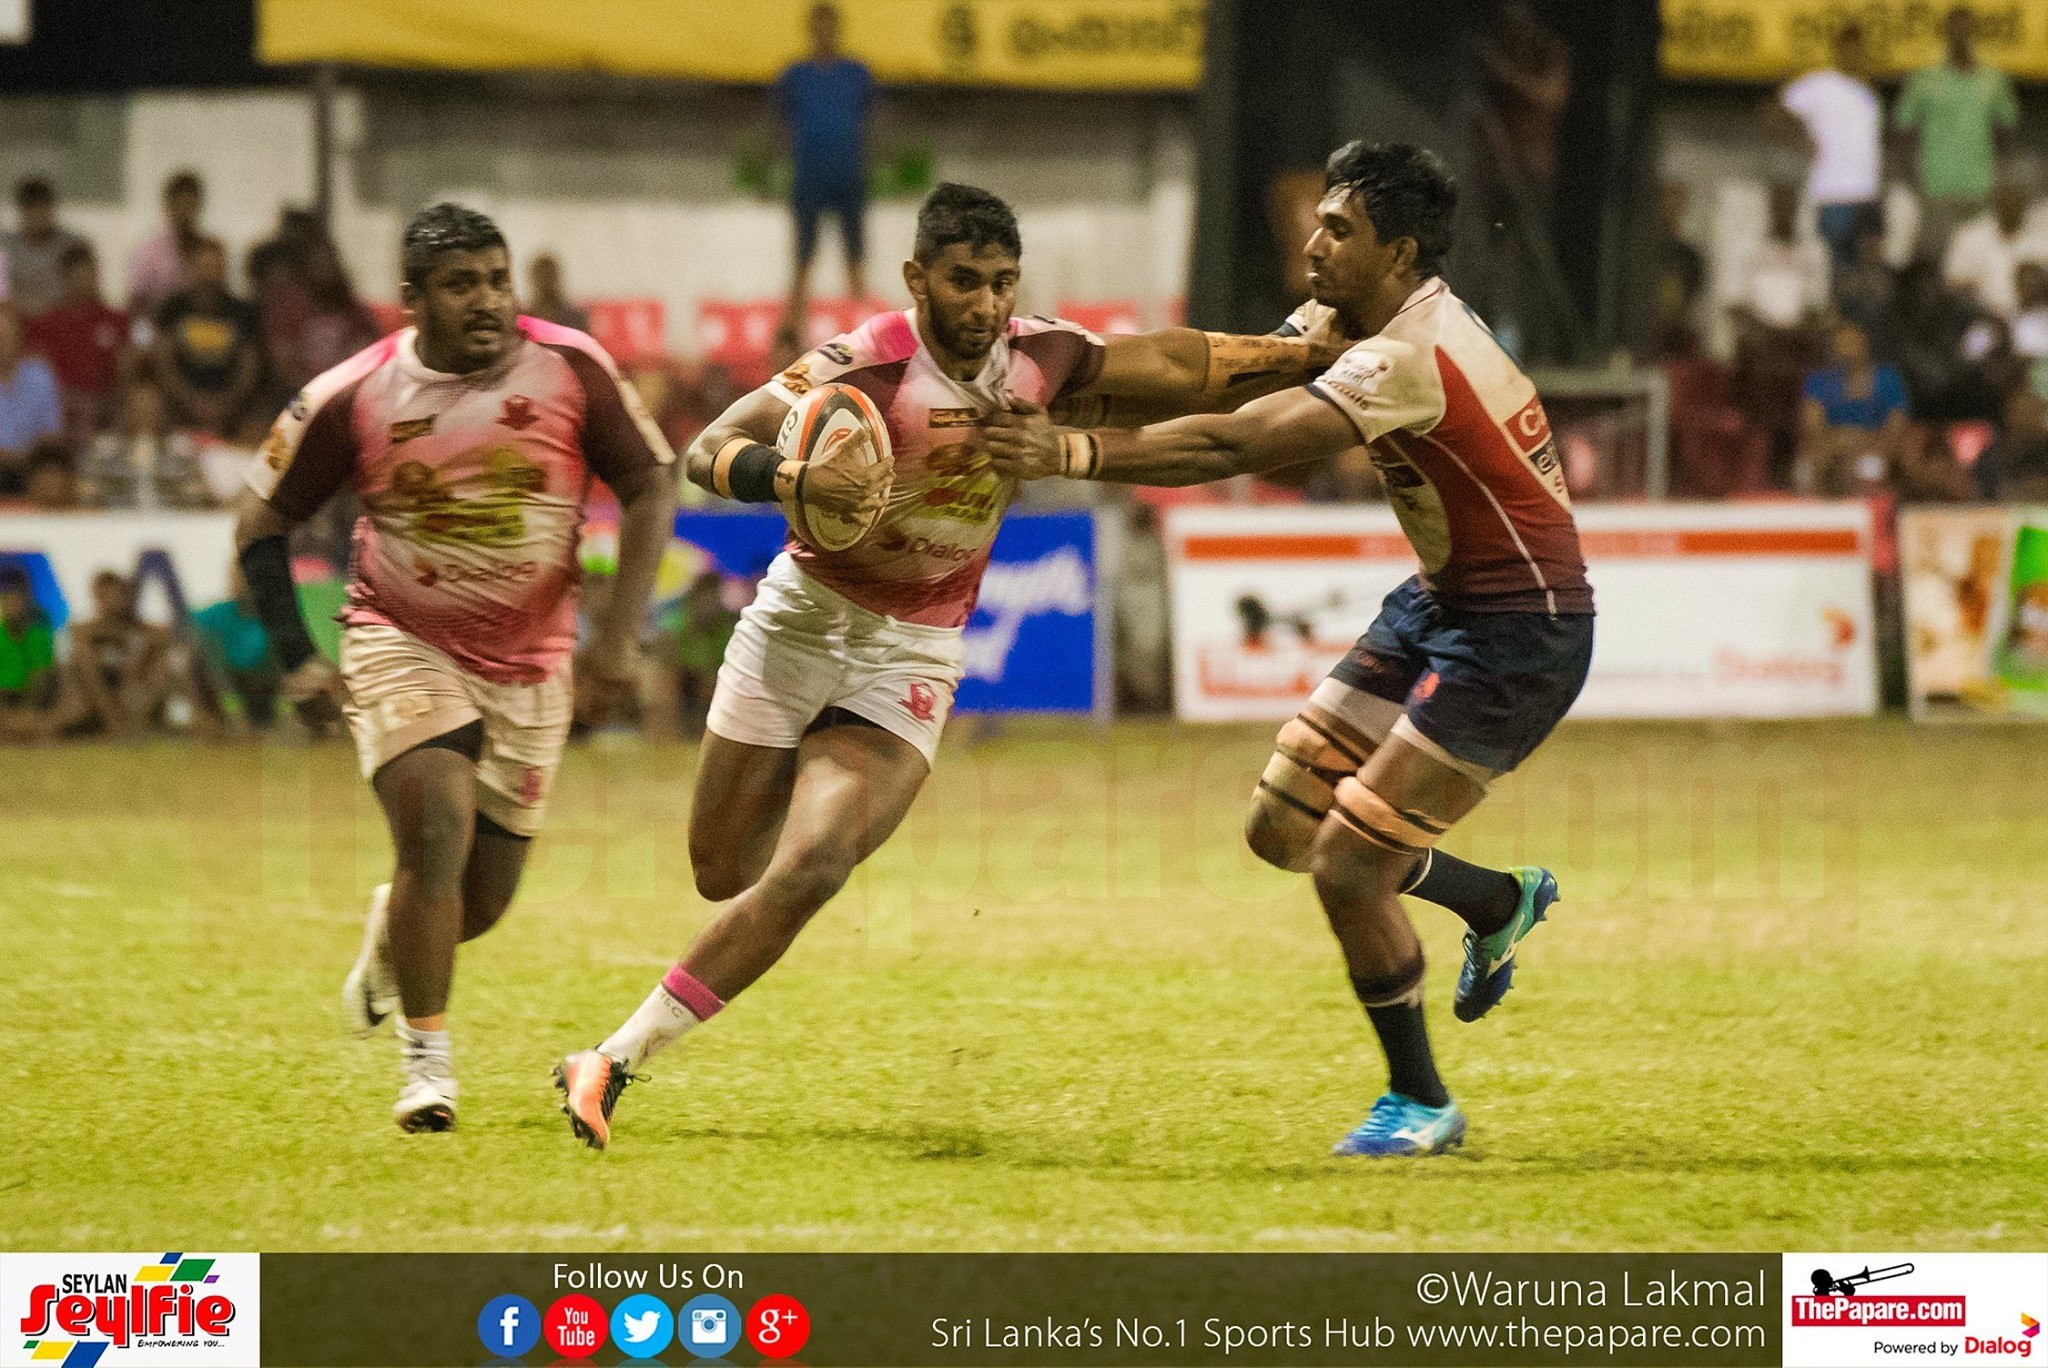 Havelock SC v Kandy SC - DRL 2016